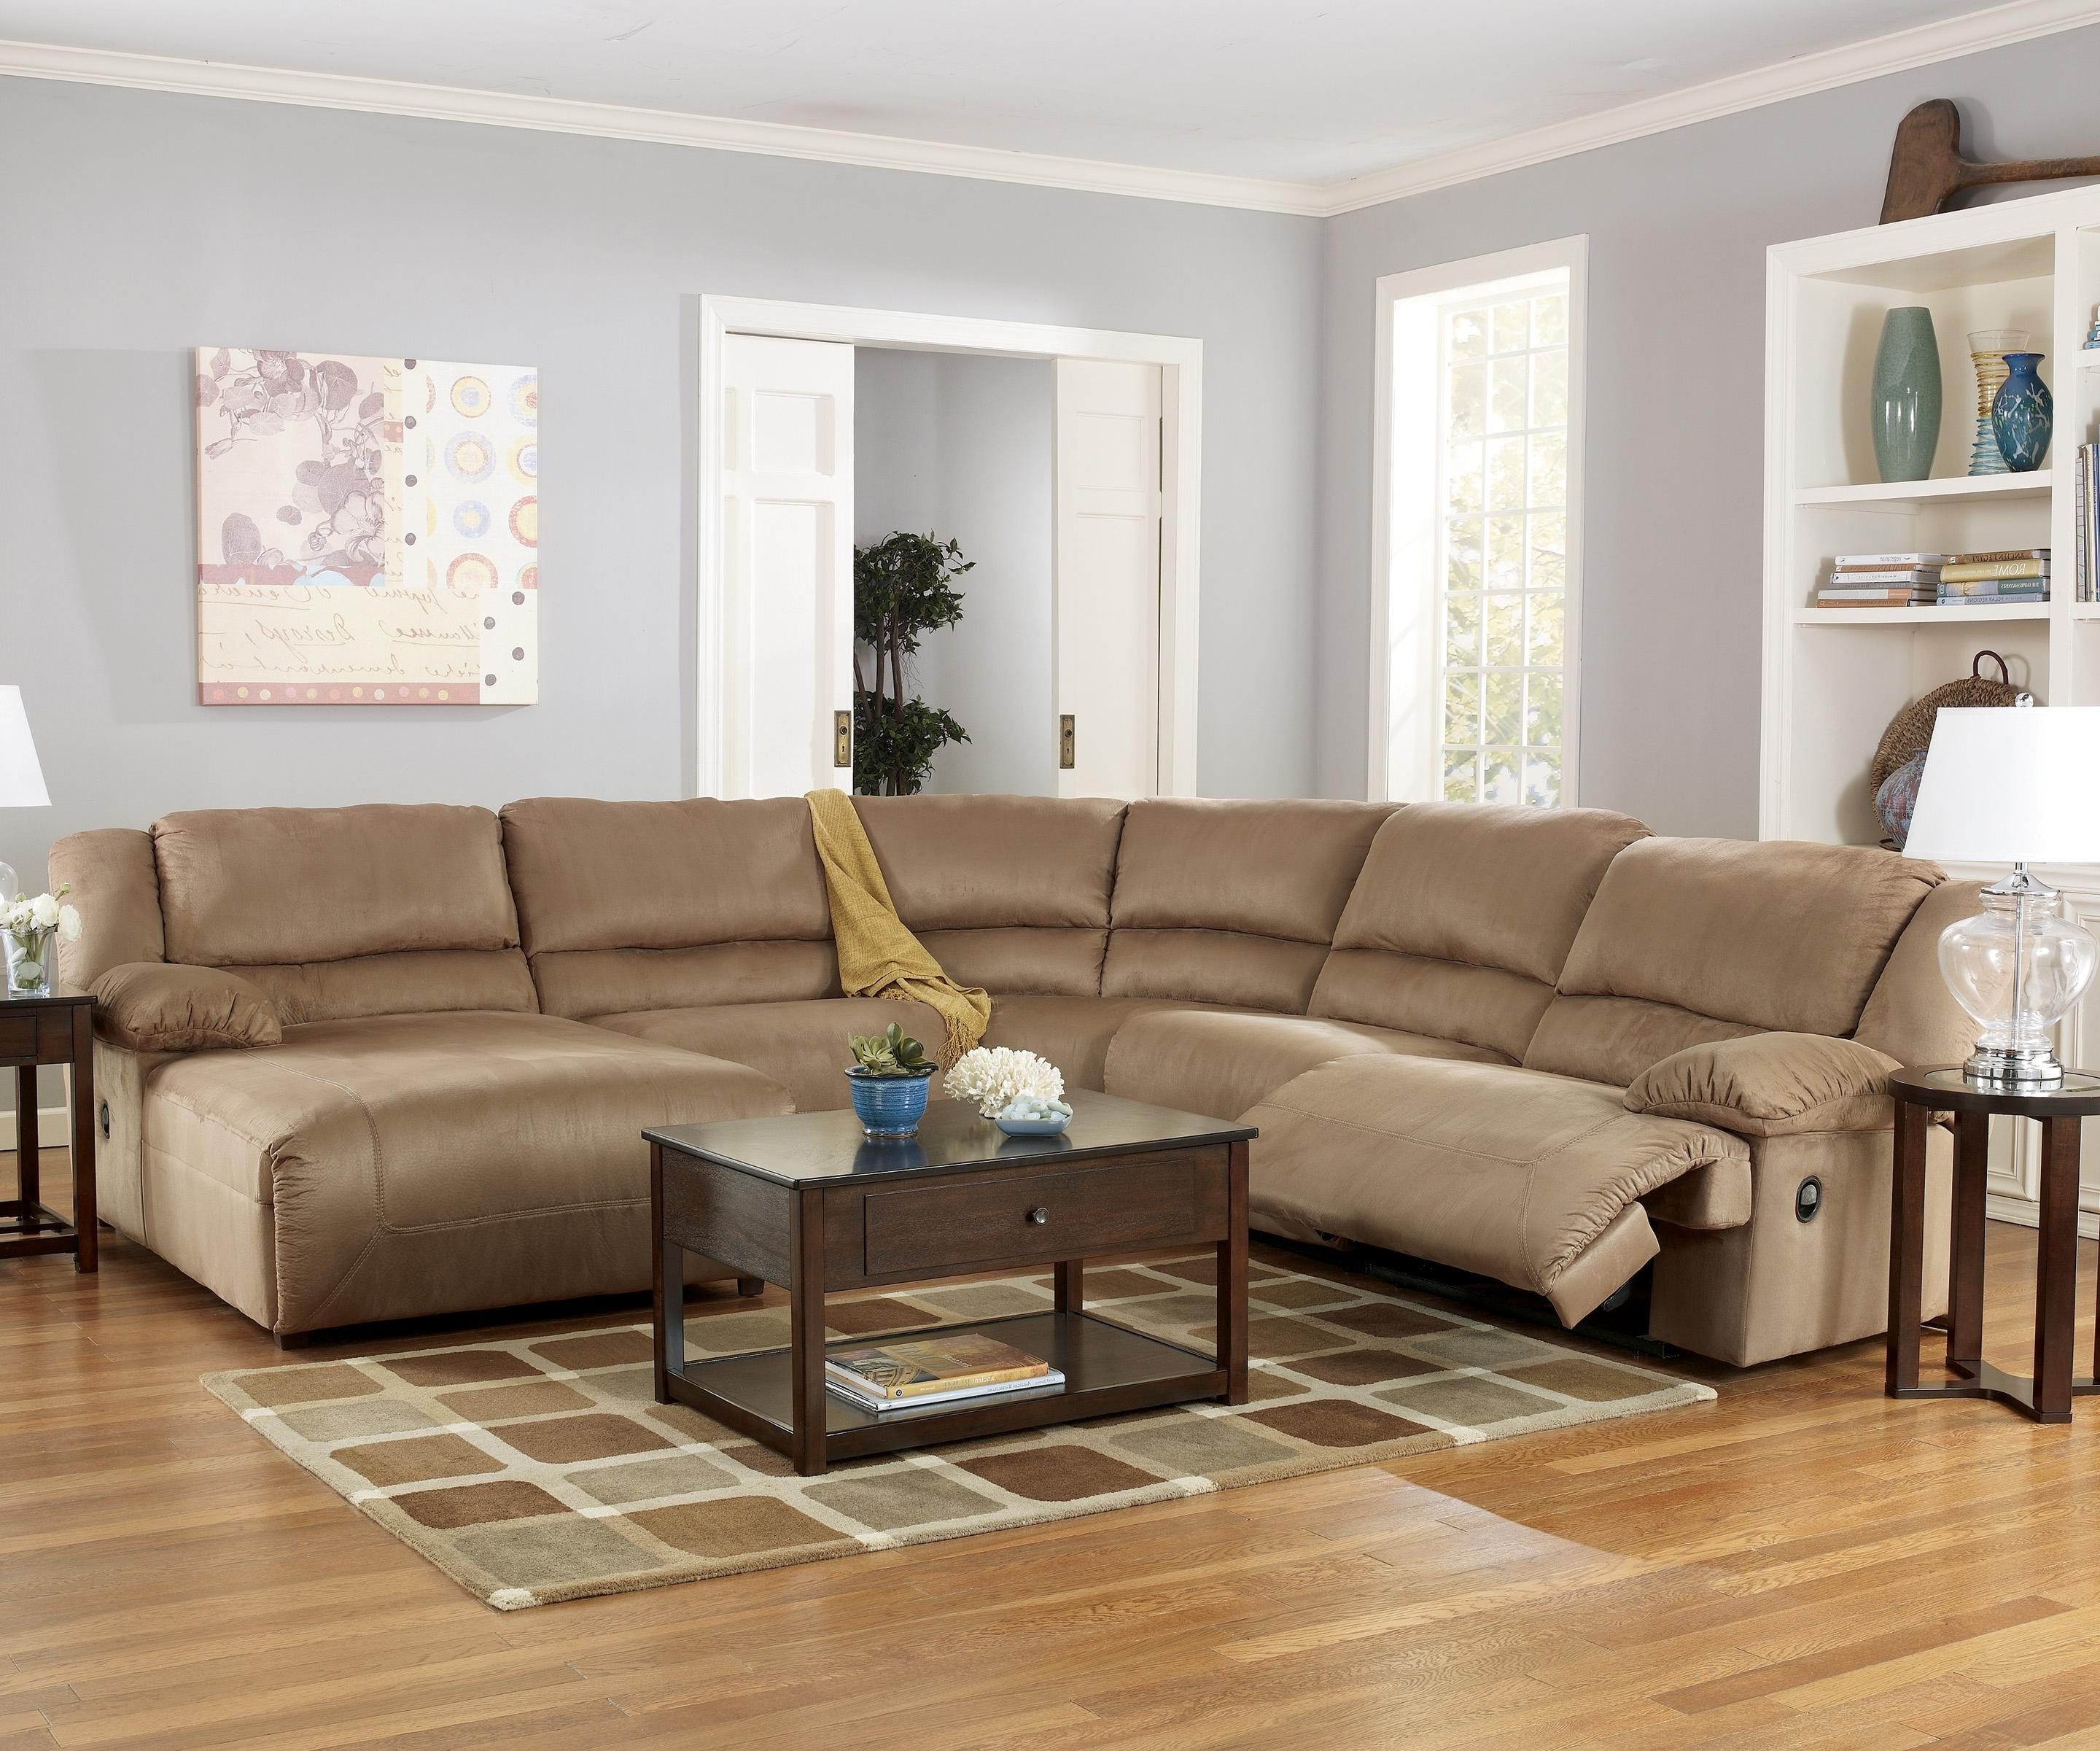 El Paso Texas Sectional Sofas With Regard To Popular Furniture: Ashley Furniture San Antonio Tx (View 4 of 20)